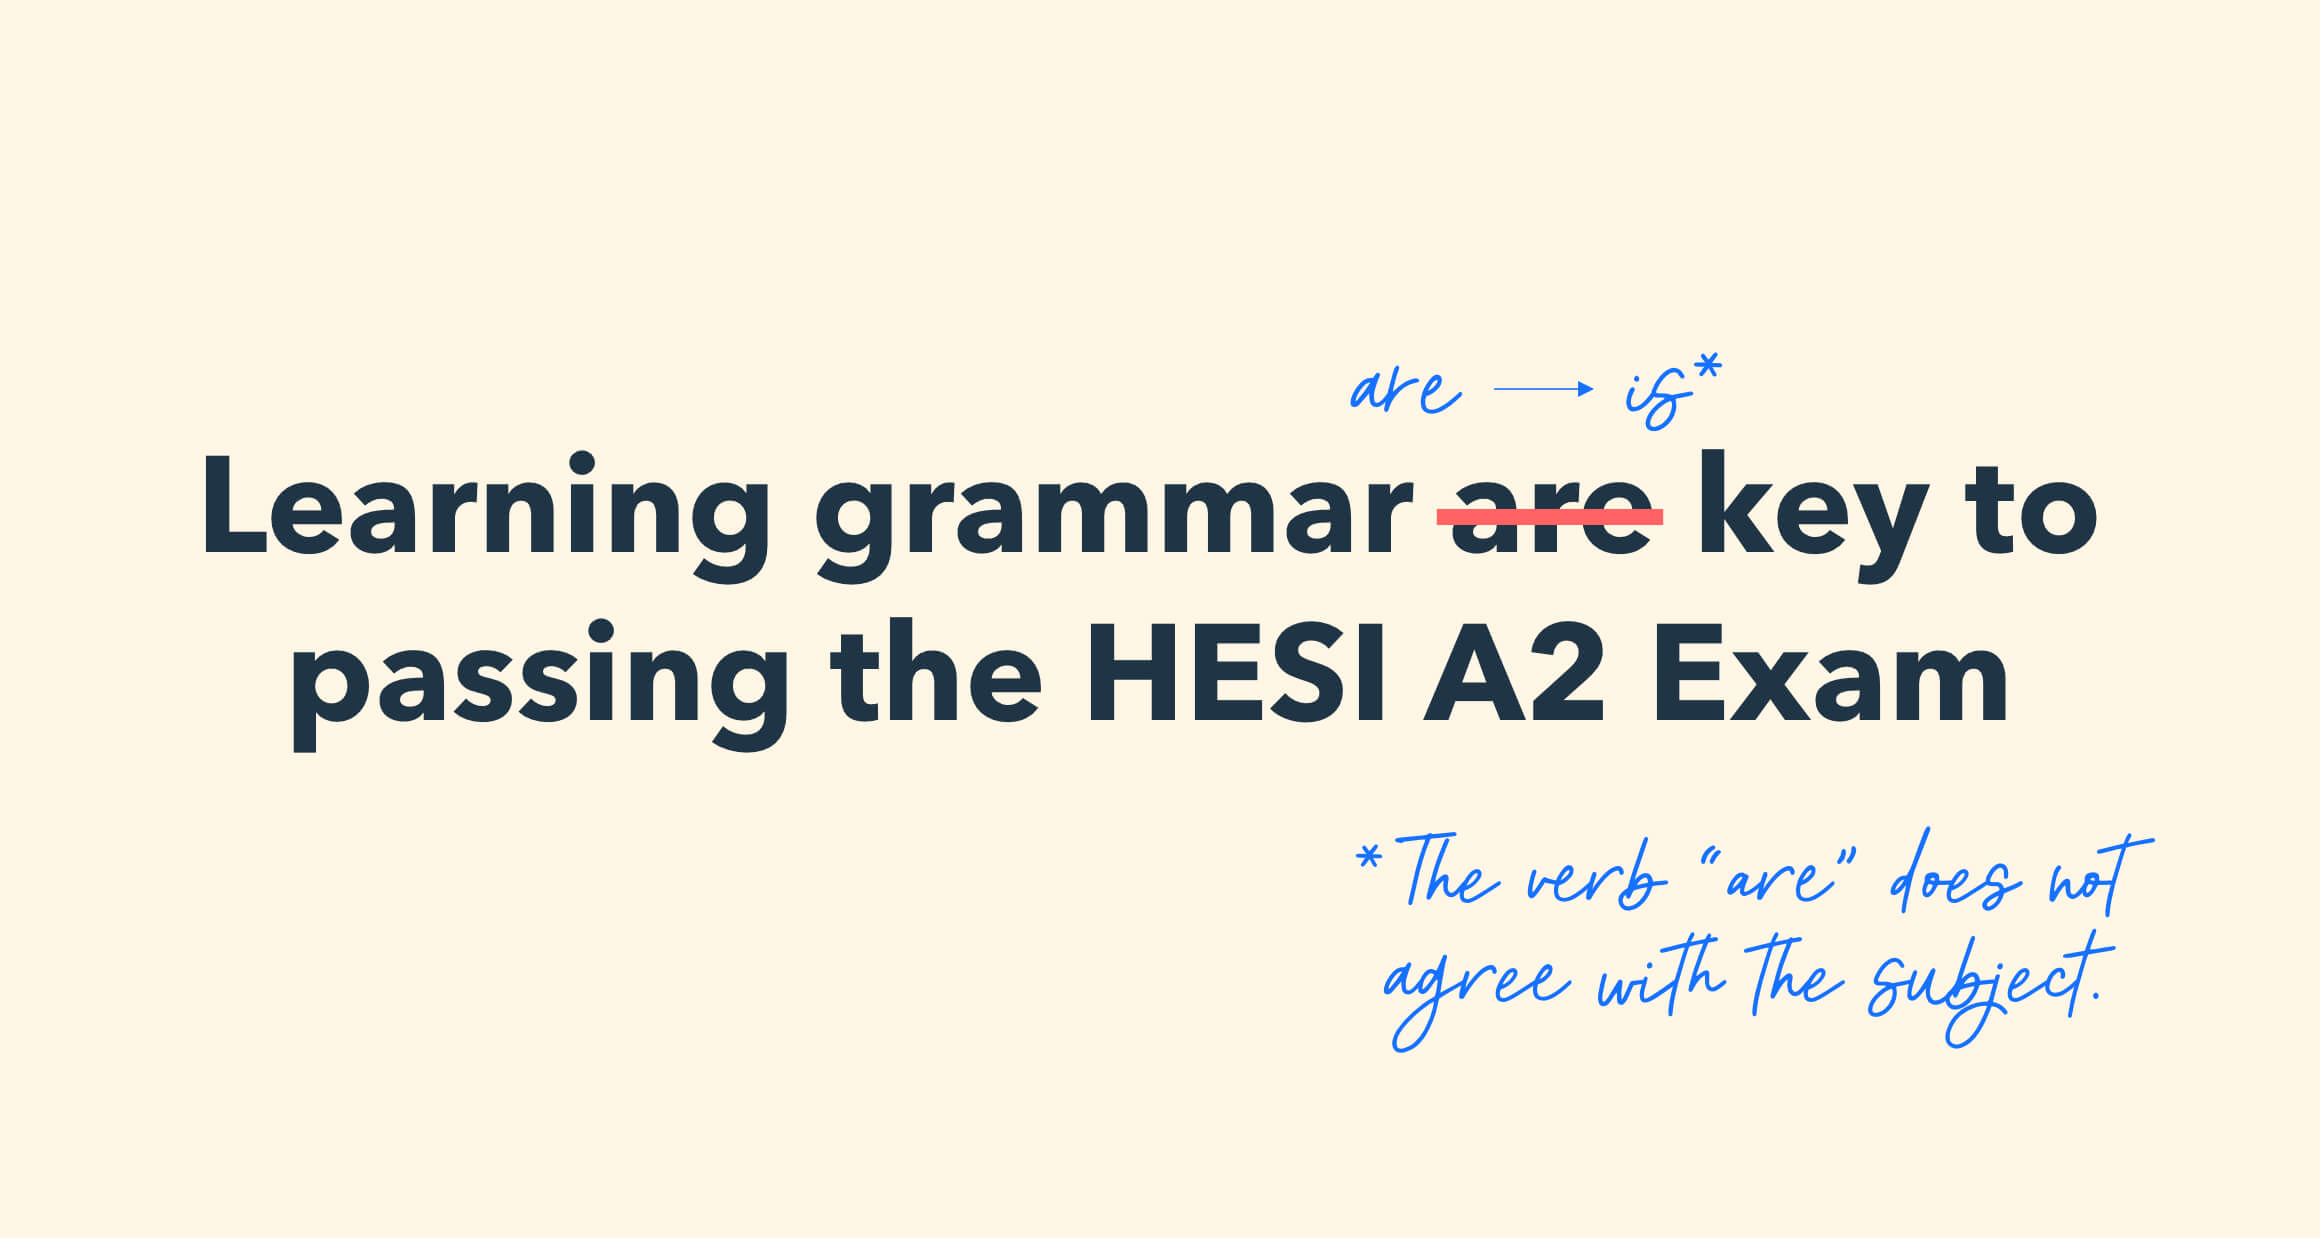 Grammatical markup of the sentence, 'learning grammar is key to passing the HESI A2 Exam.'